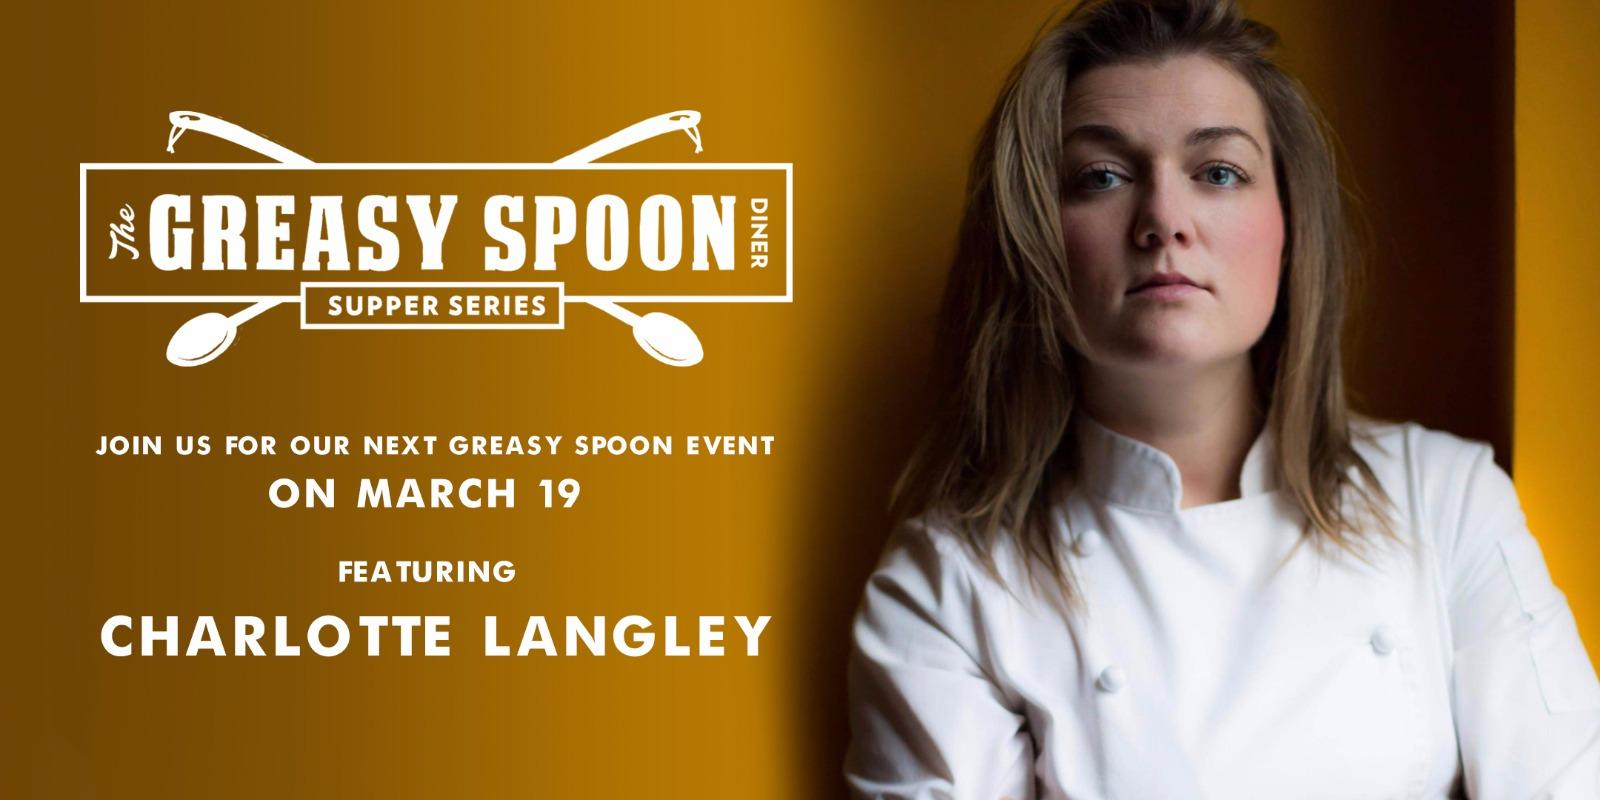 Greasy Spoon Diner Vol. 37 Featuring Chef Cha